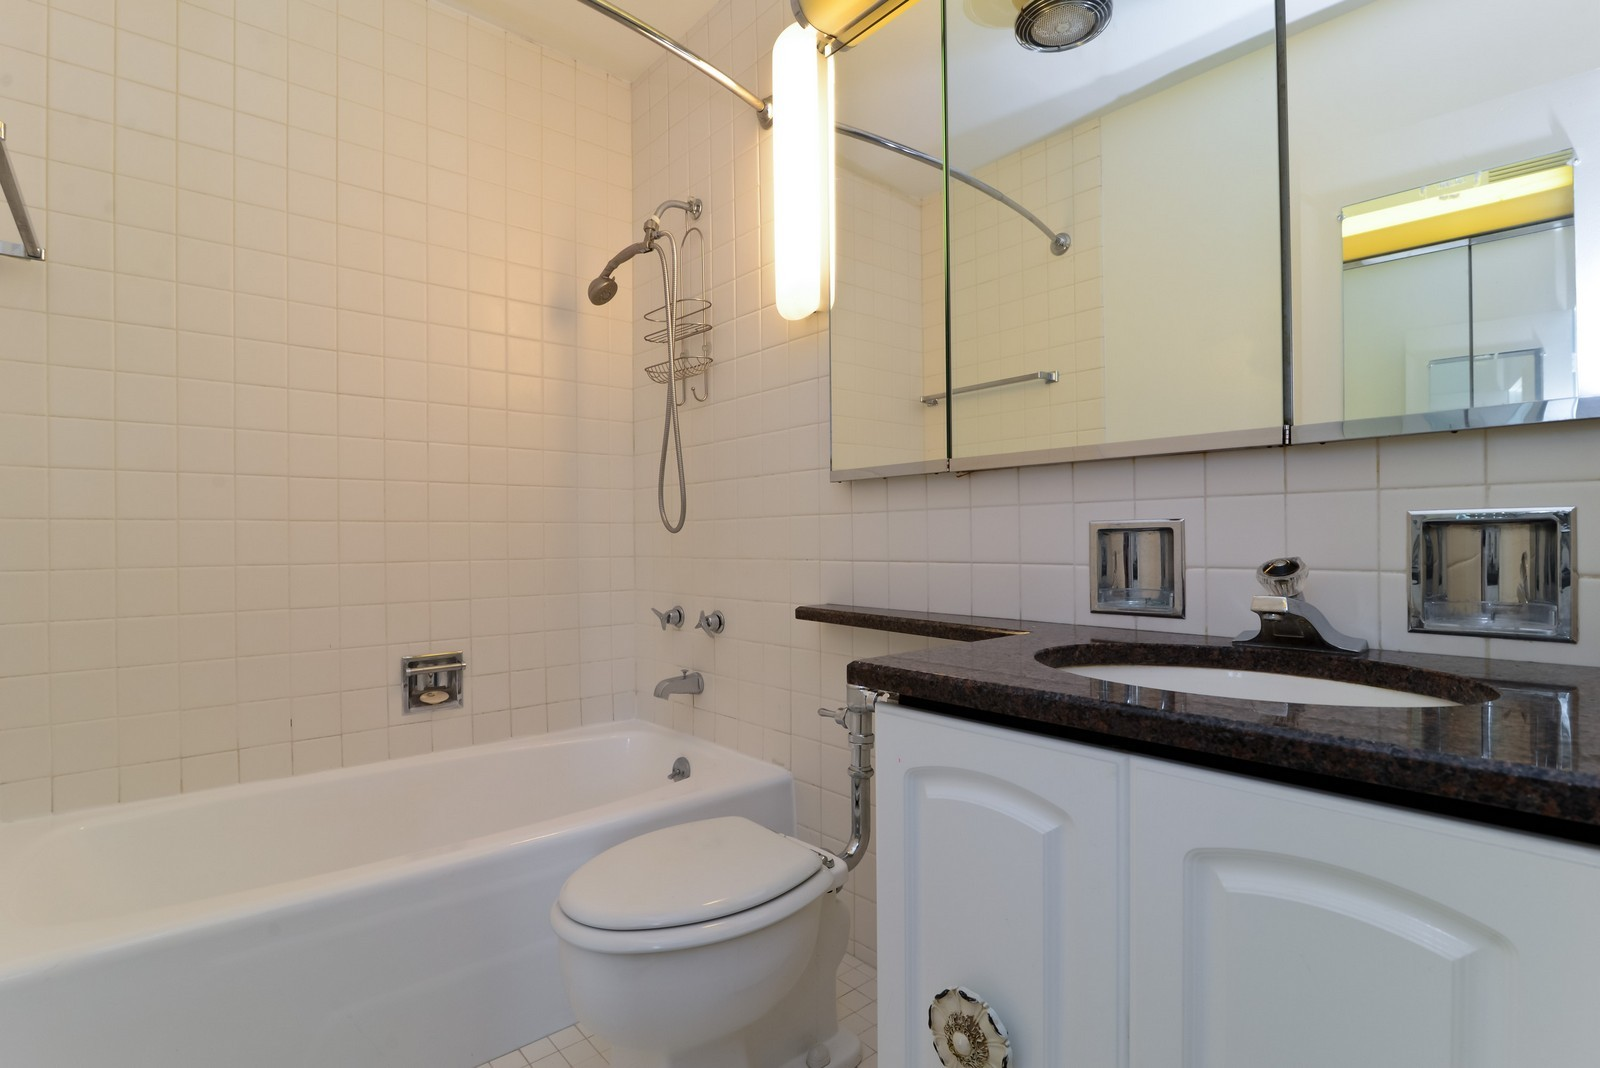 Real Estate Photography - 777 N Michigan Ave, Unit 2200, Chicago, IL, 60611 - Bathroom